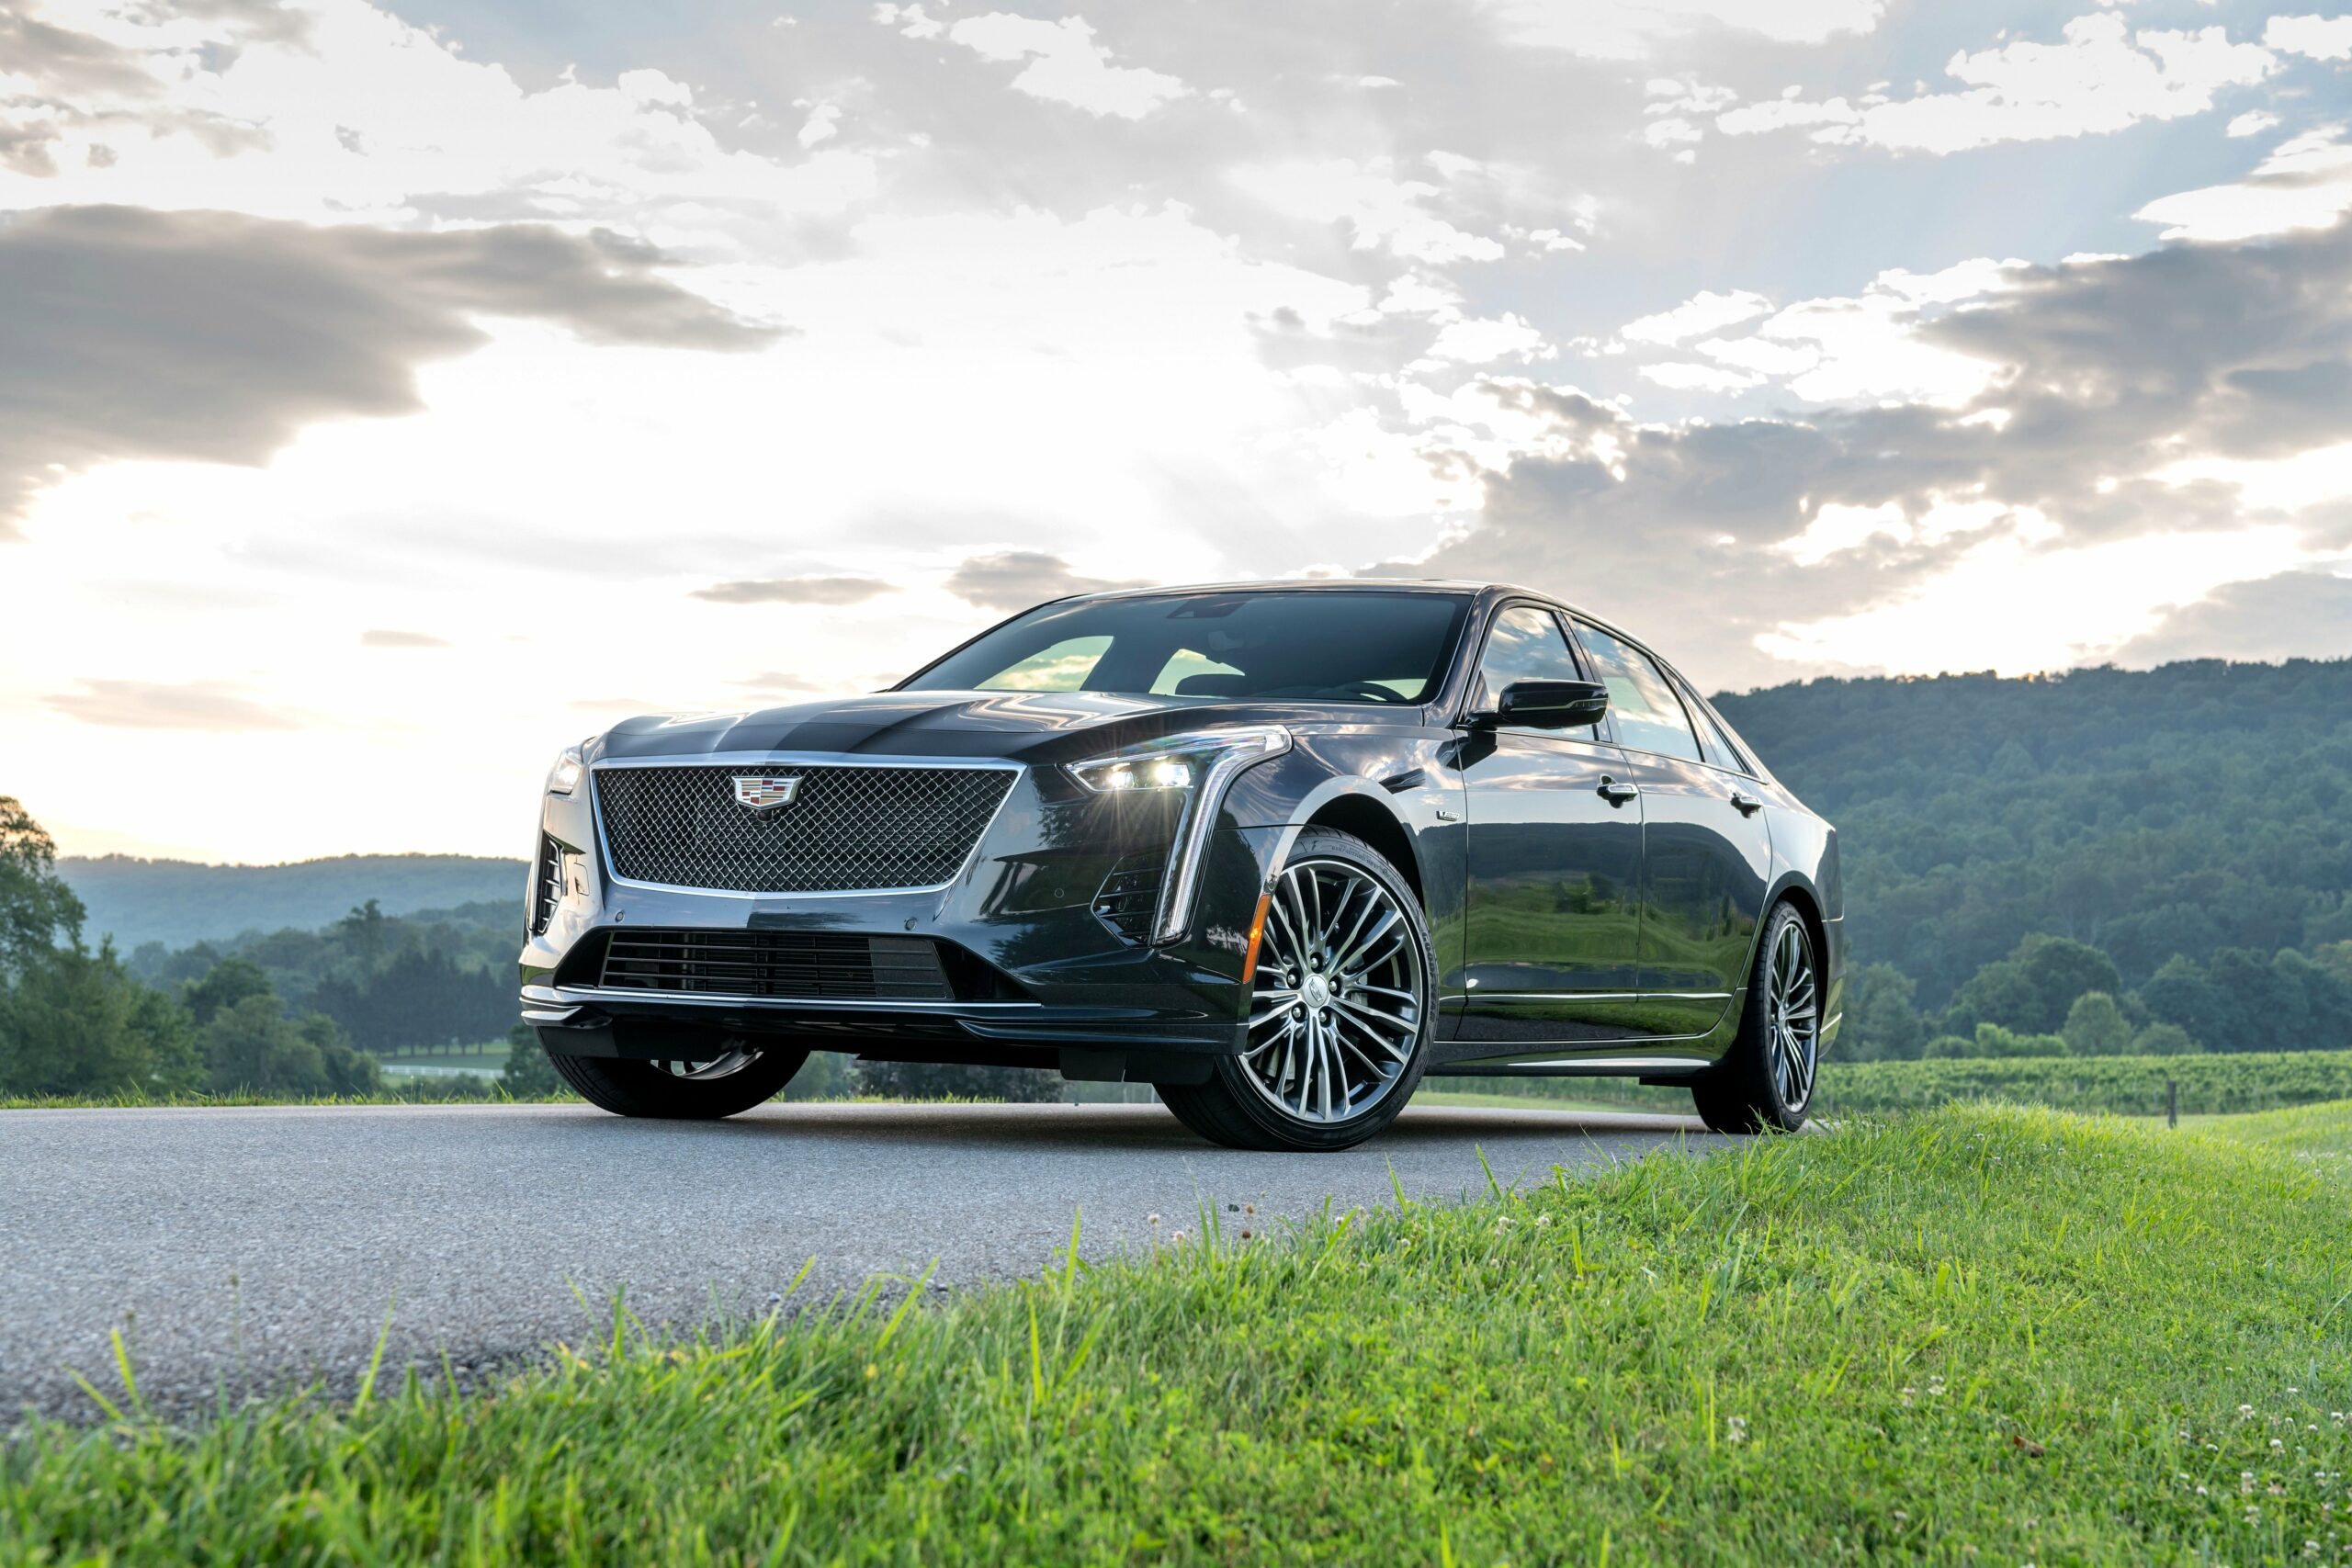 cadillac discontinued cars 2020 Concept